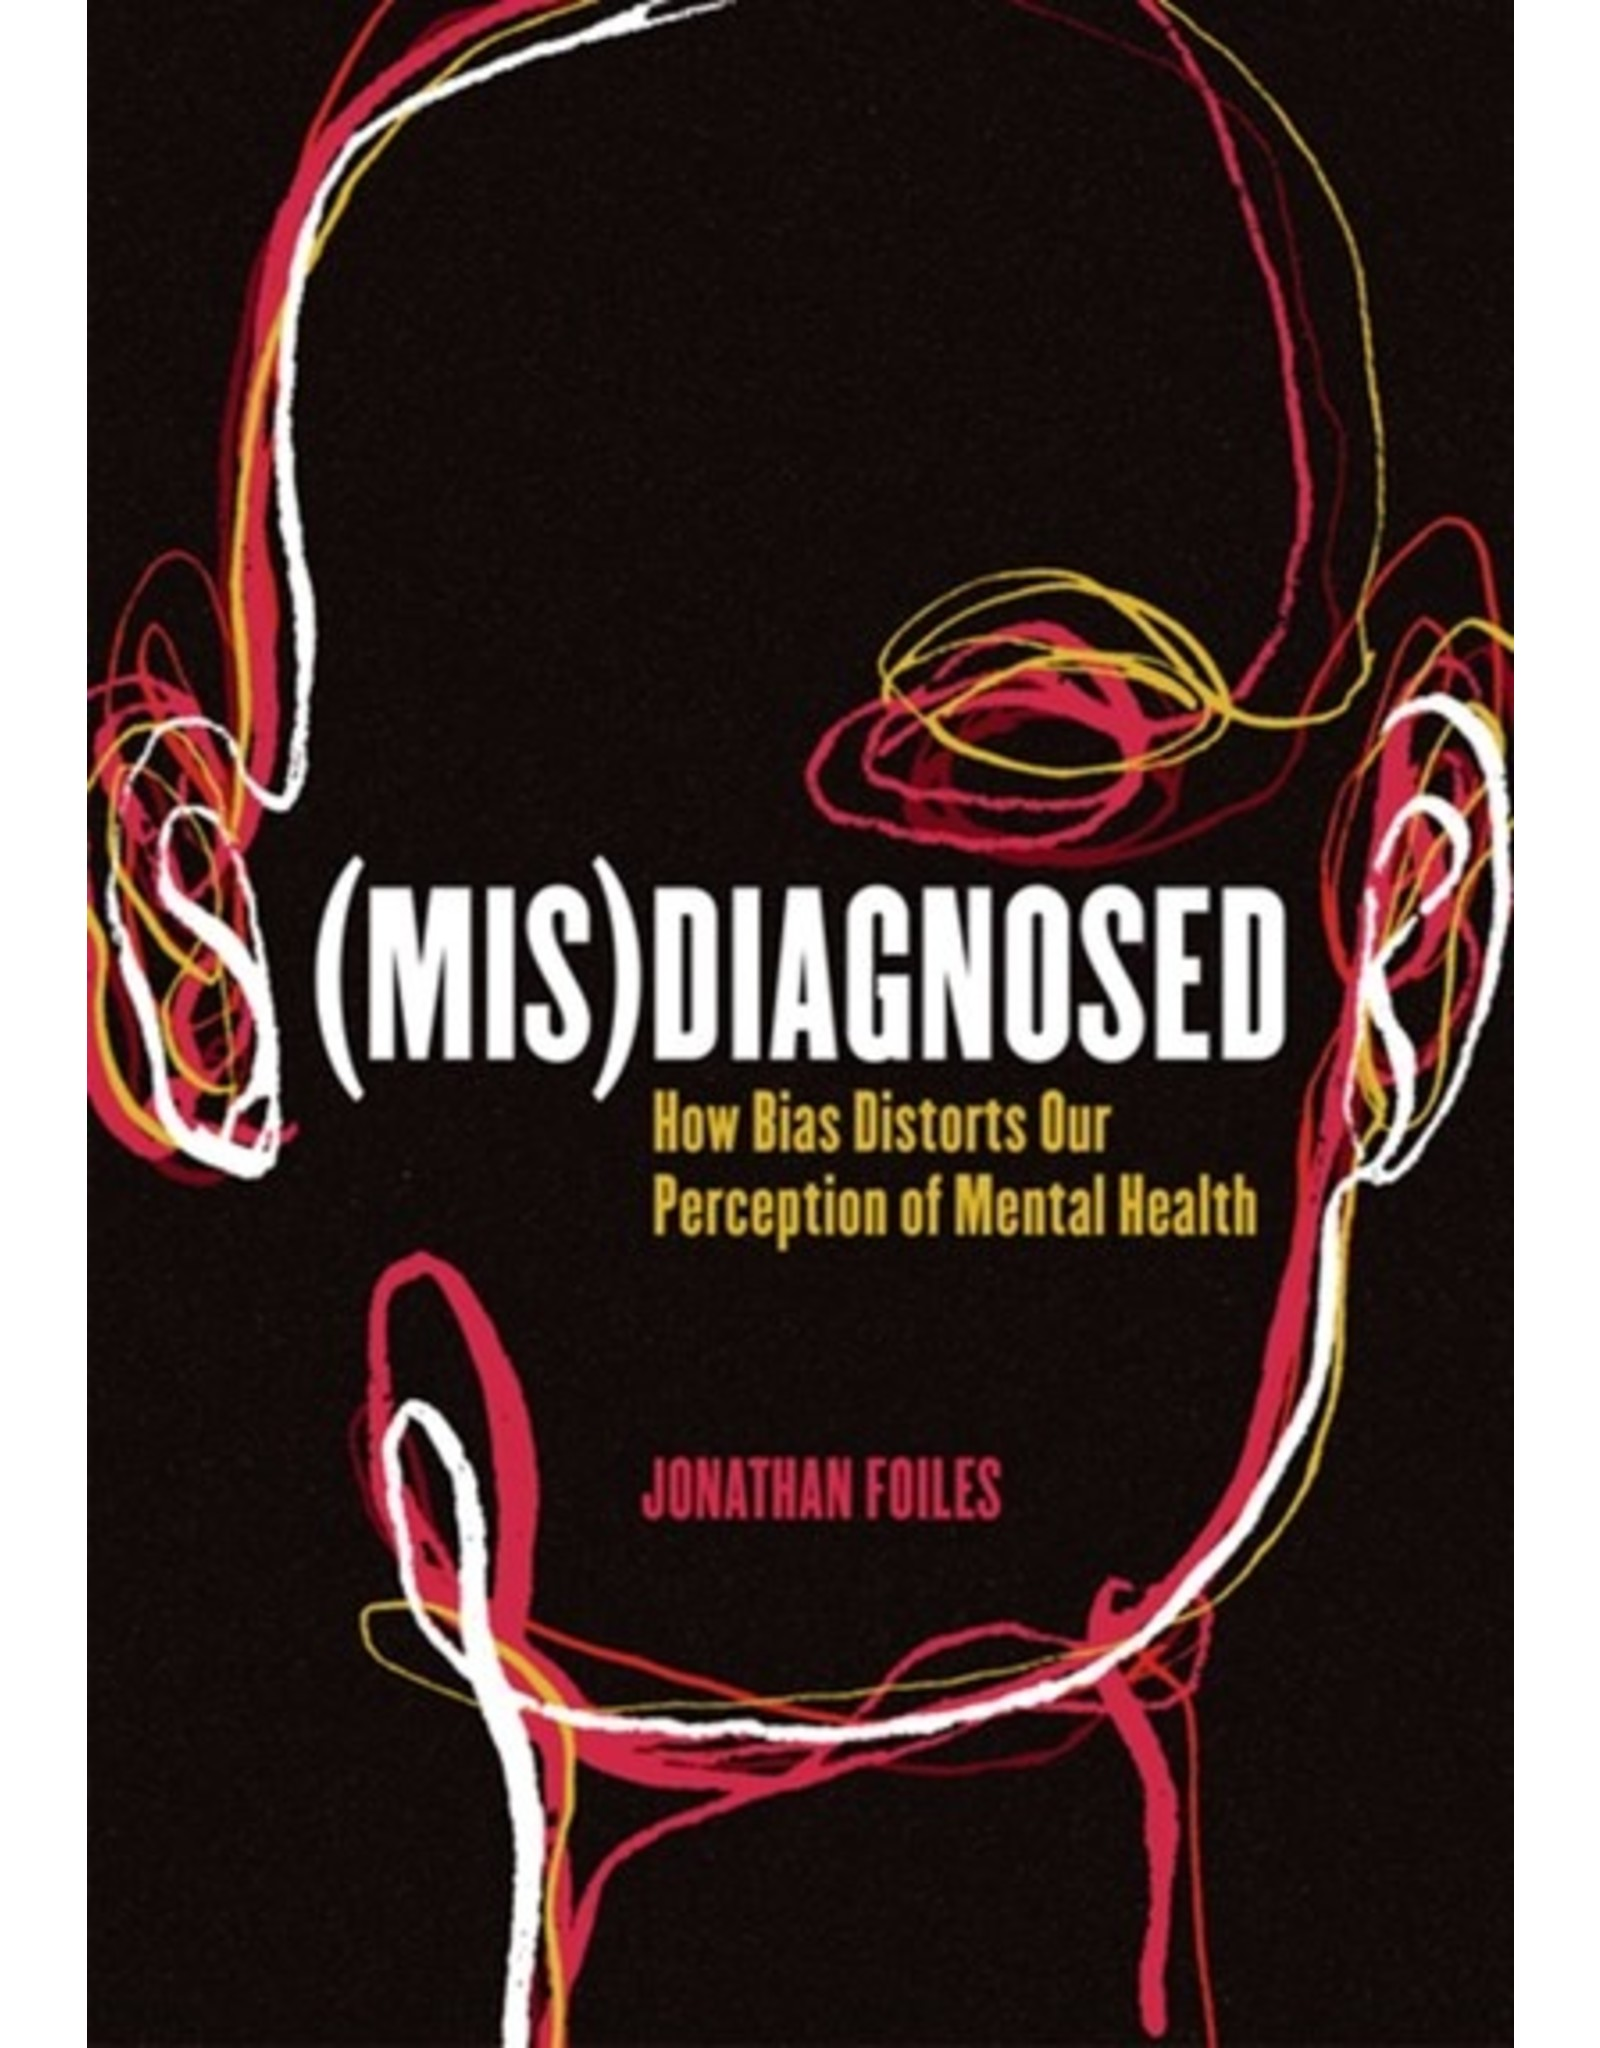 Books Misdiagnosed: How Bias Distorts Our Perception of Mental Health by Jonathan Foiles